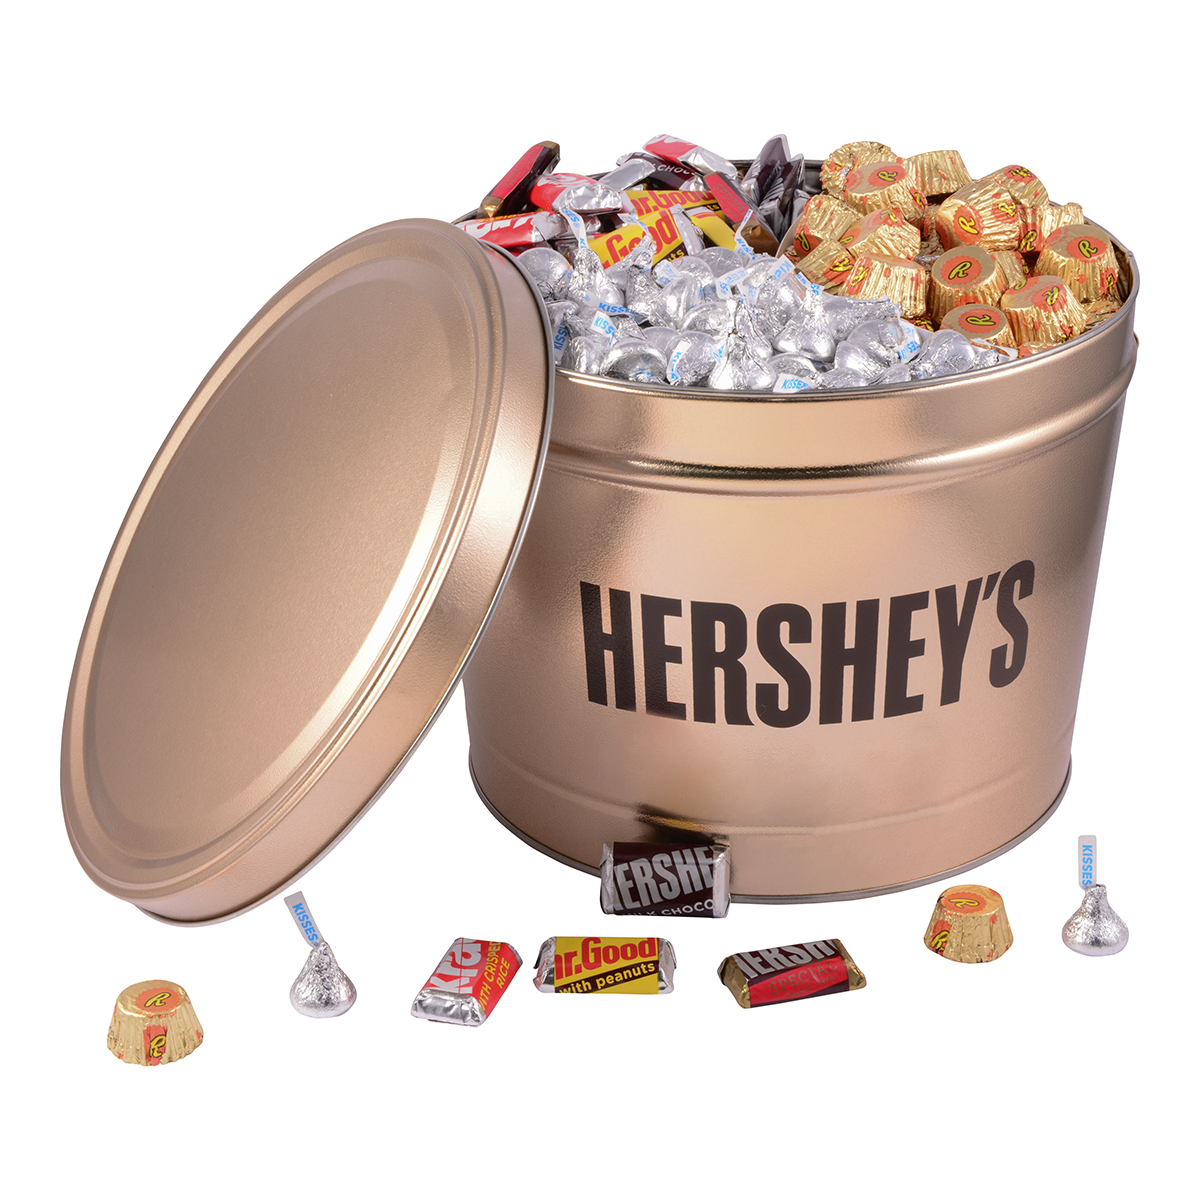 HERSHEY'S Gold Tin, 11 lbs.